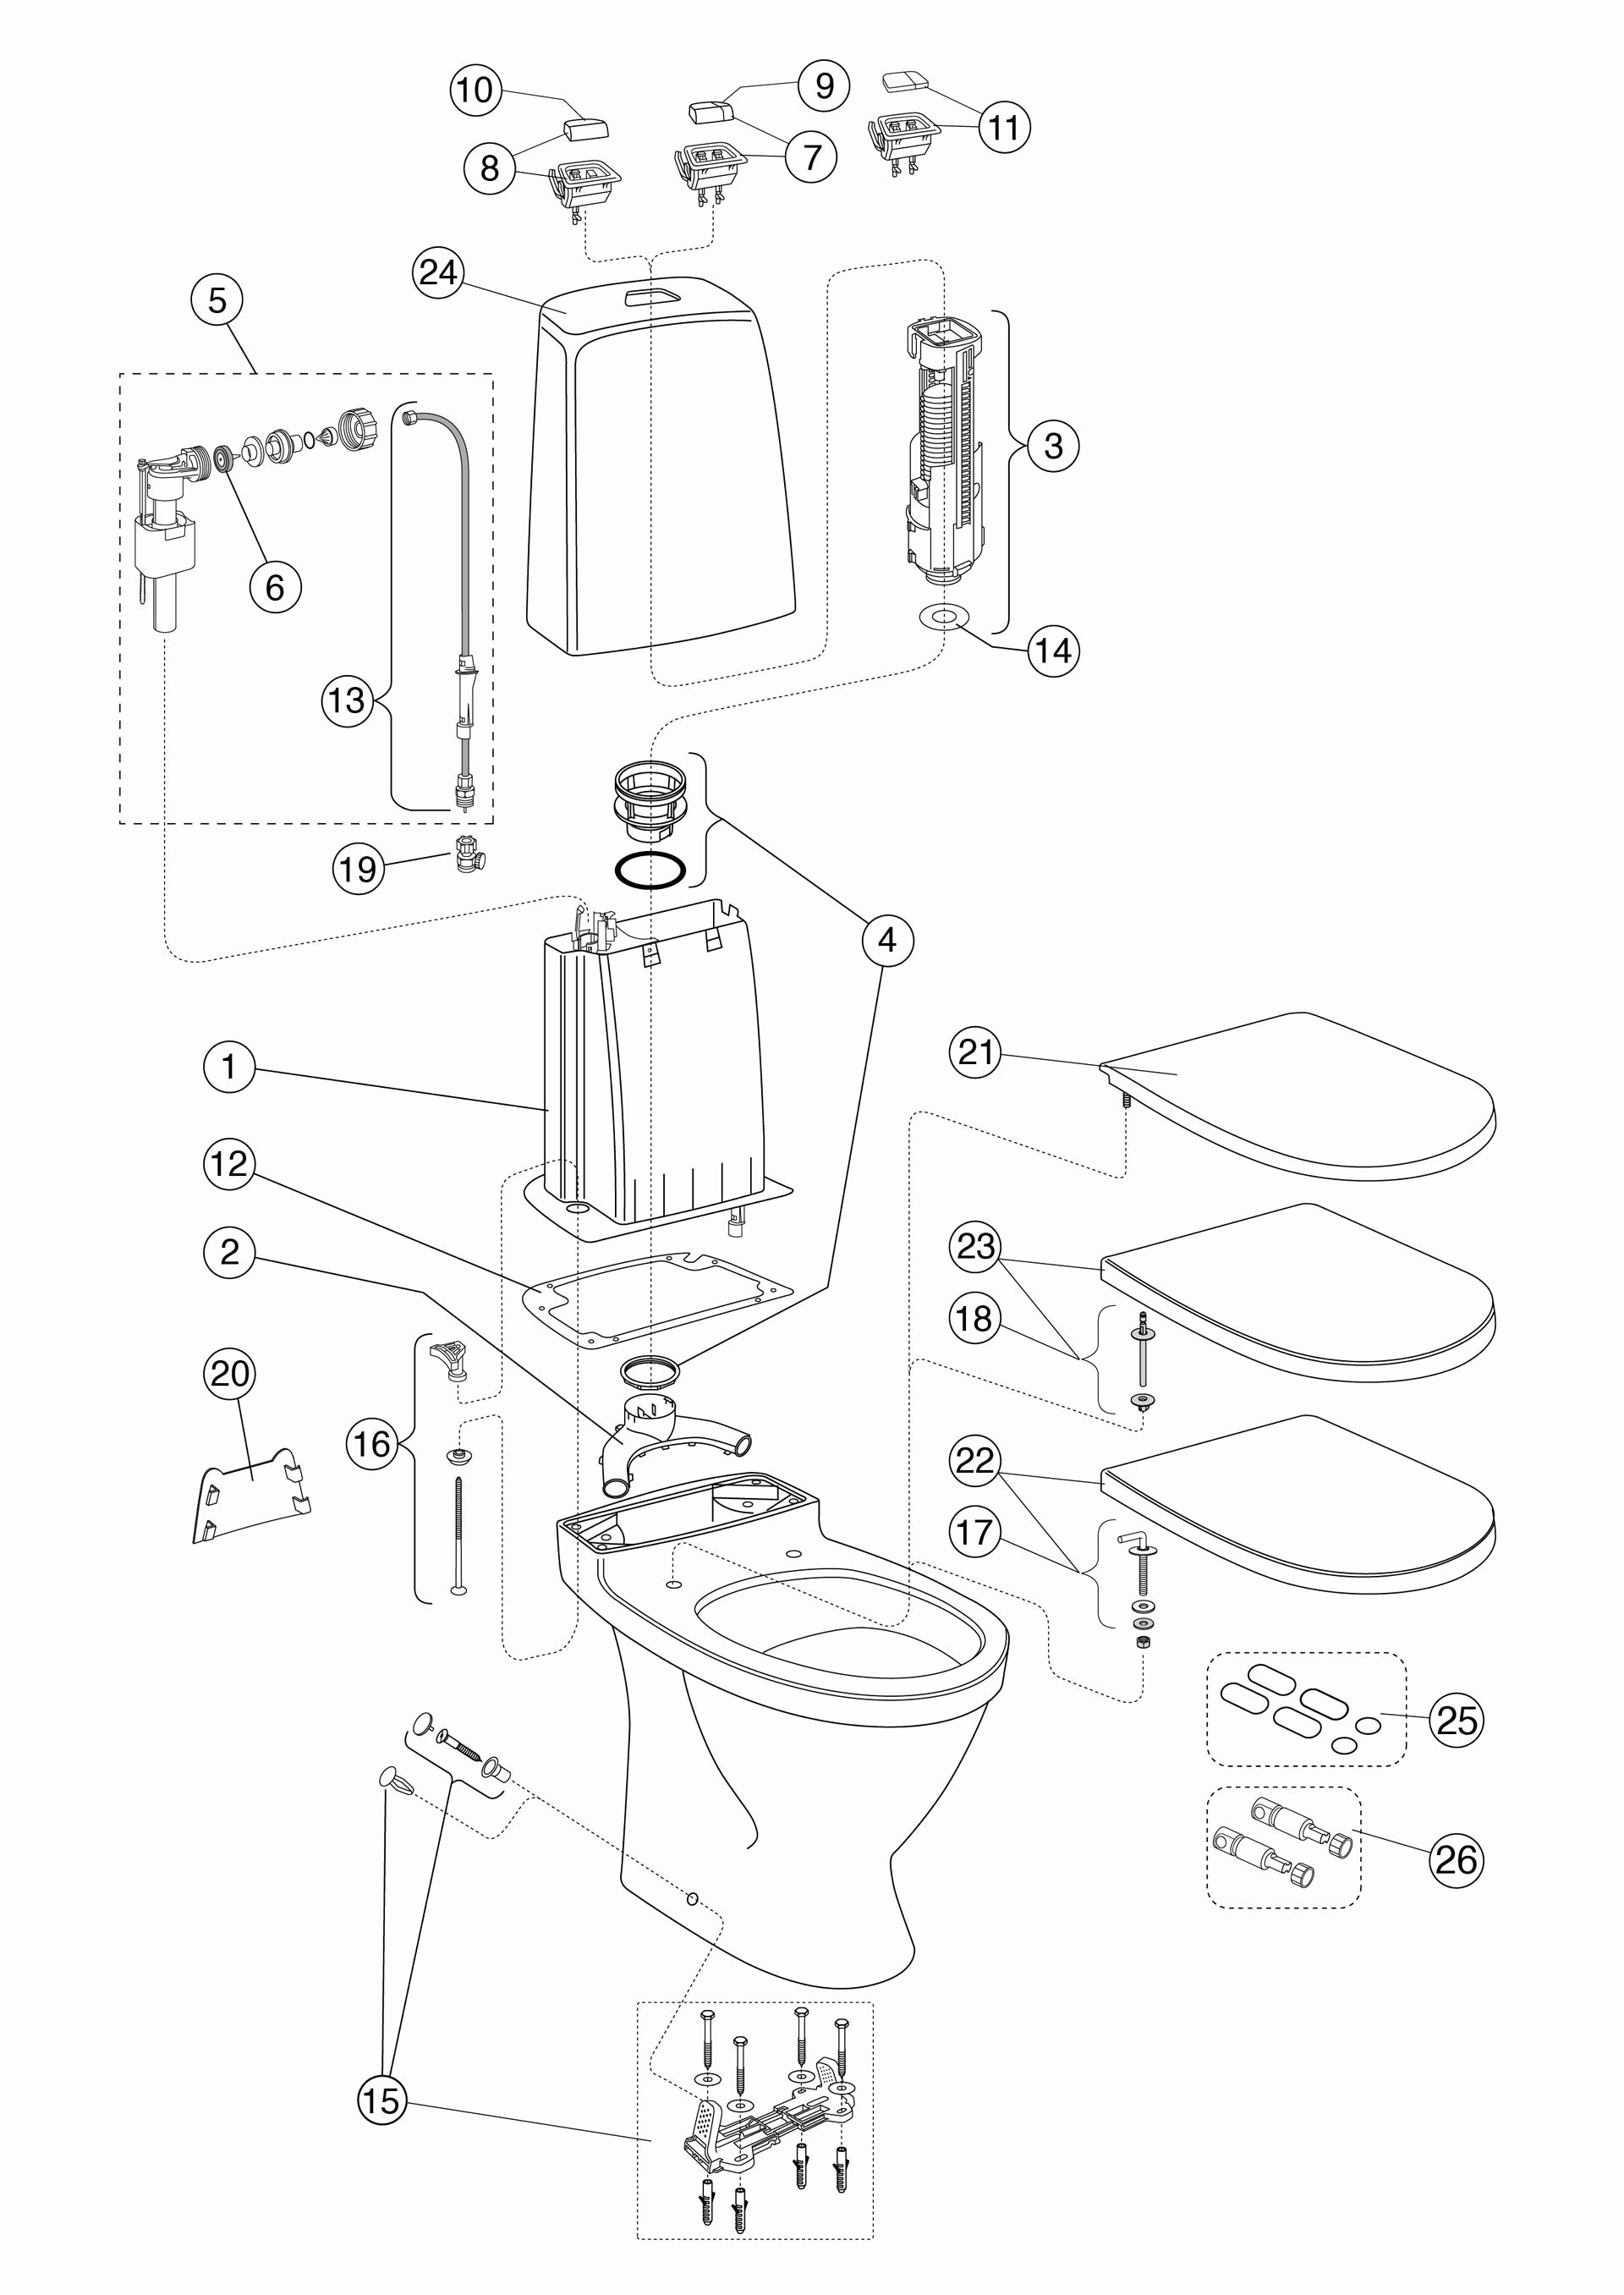 Bathtub Drain Parts Diagram Kitchen Sink Parts Names Refrence Kitchen Sink Drain Parts Of Bathtub Drain Parts Diagram All You Need to Know About Bathtub Drain